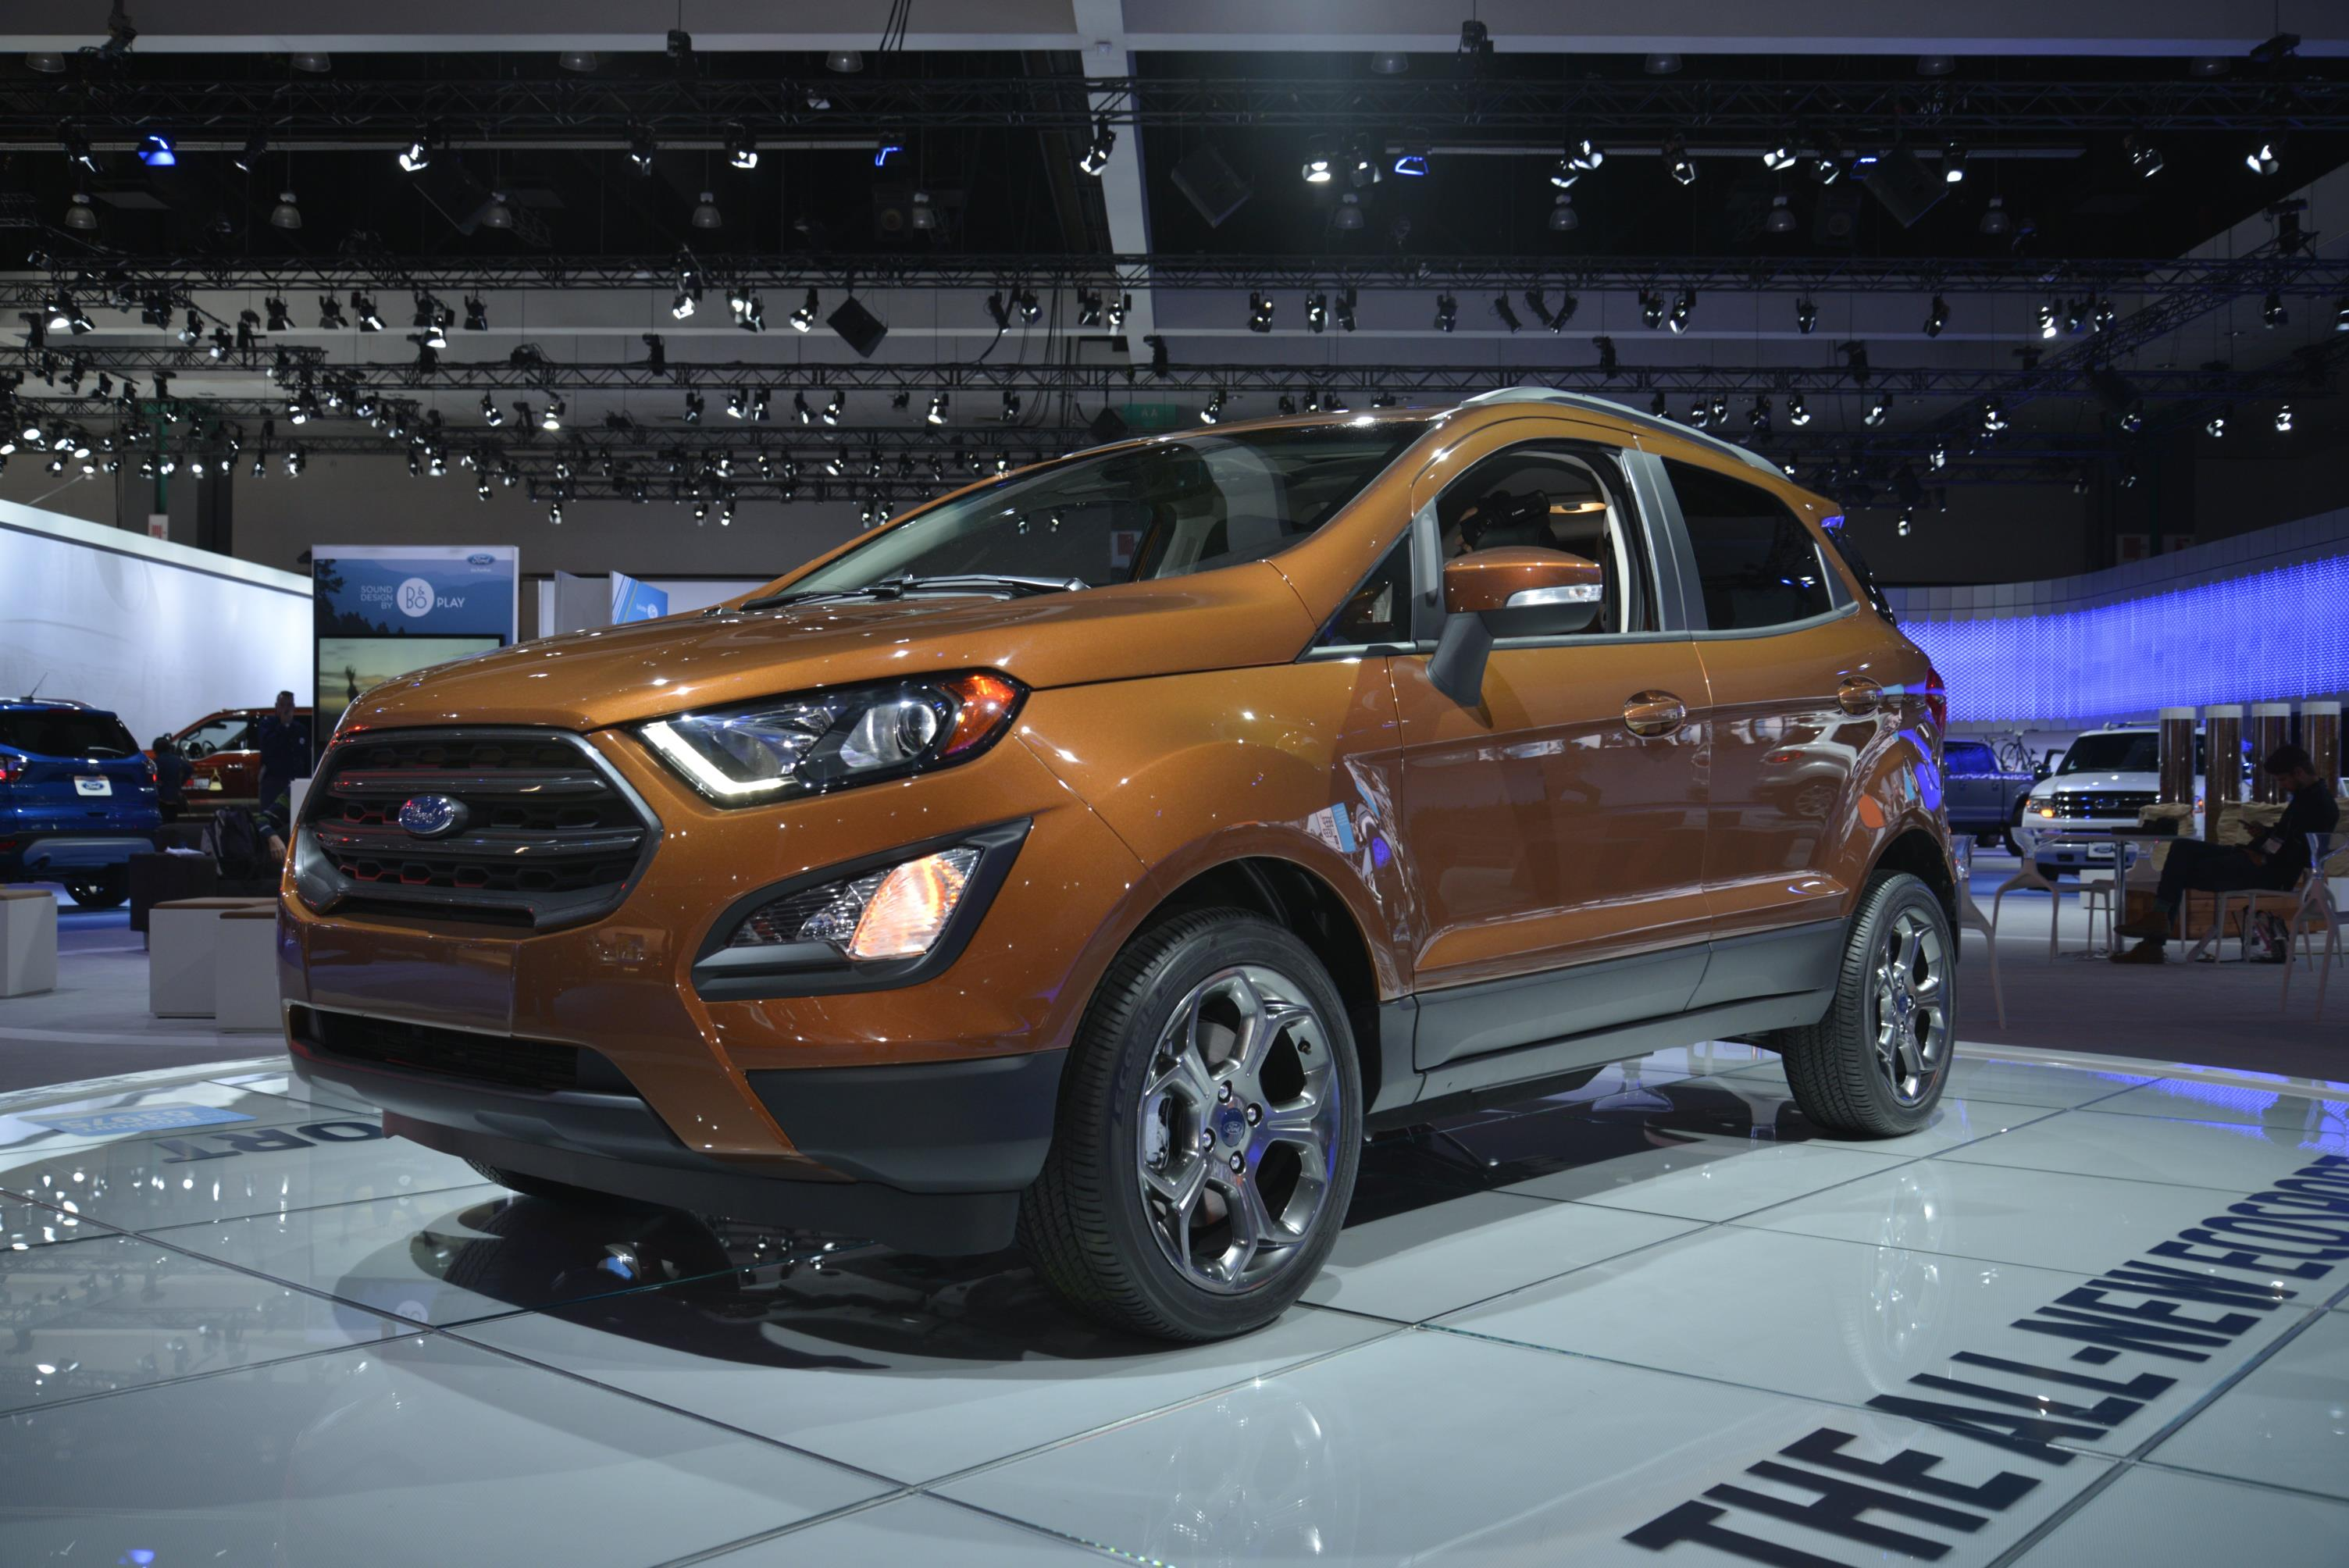 2018 ford ecosport looks ugly as sin in los angeles autoevolution. Black Bedroom Furniture Sets. Home Design Ideas